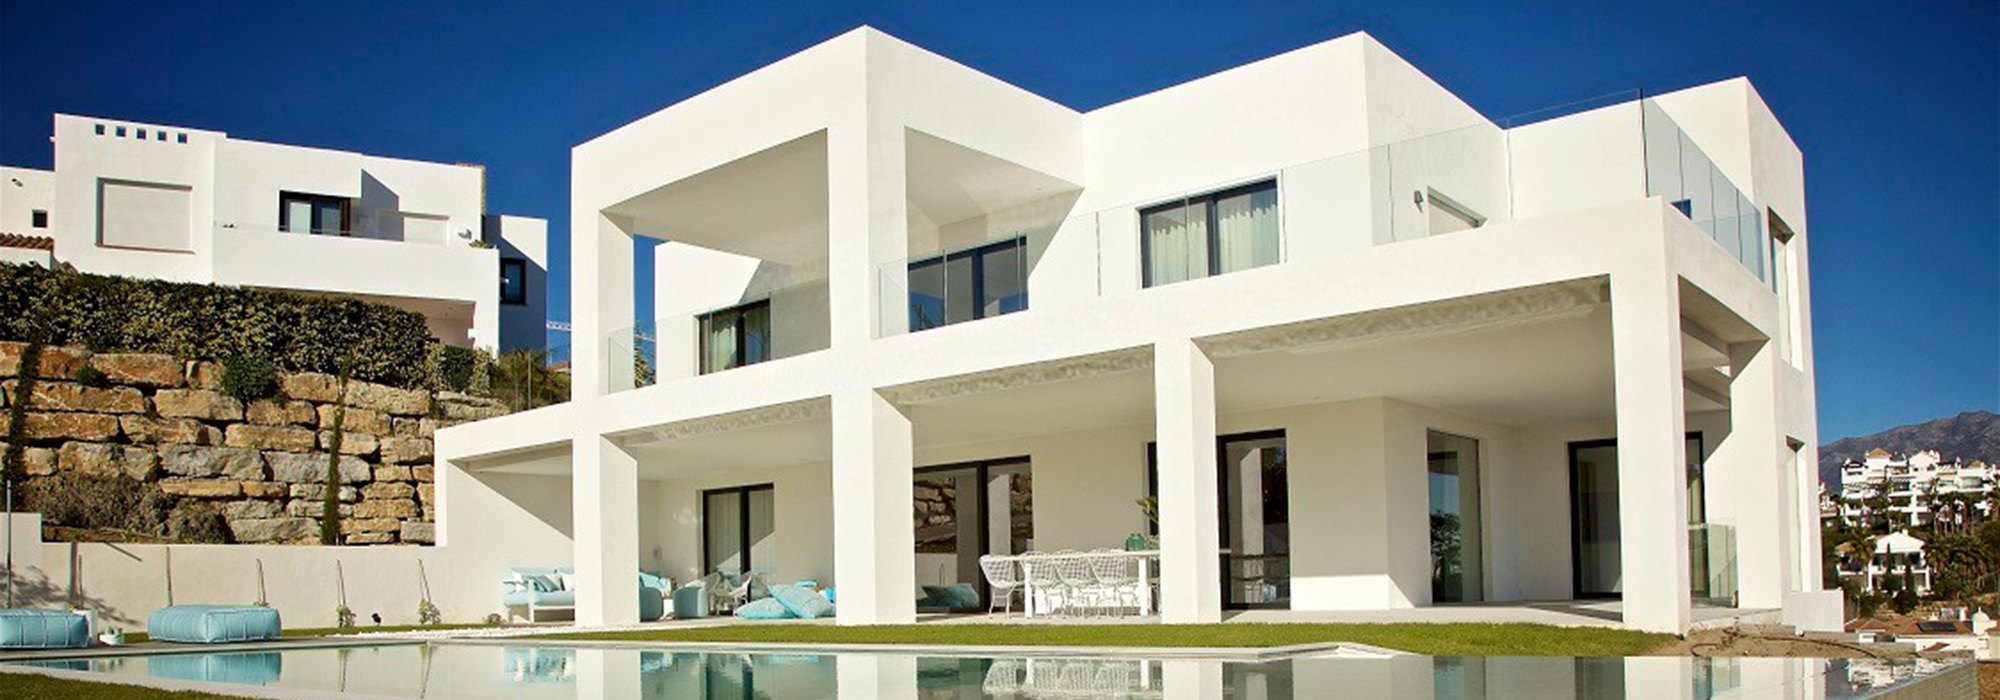 Villa – Detached in Benahavís,Costa del Sol for sale